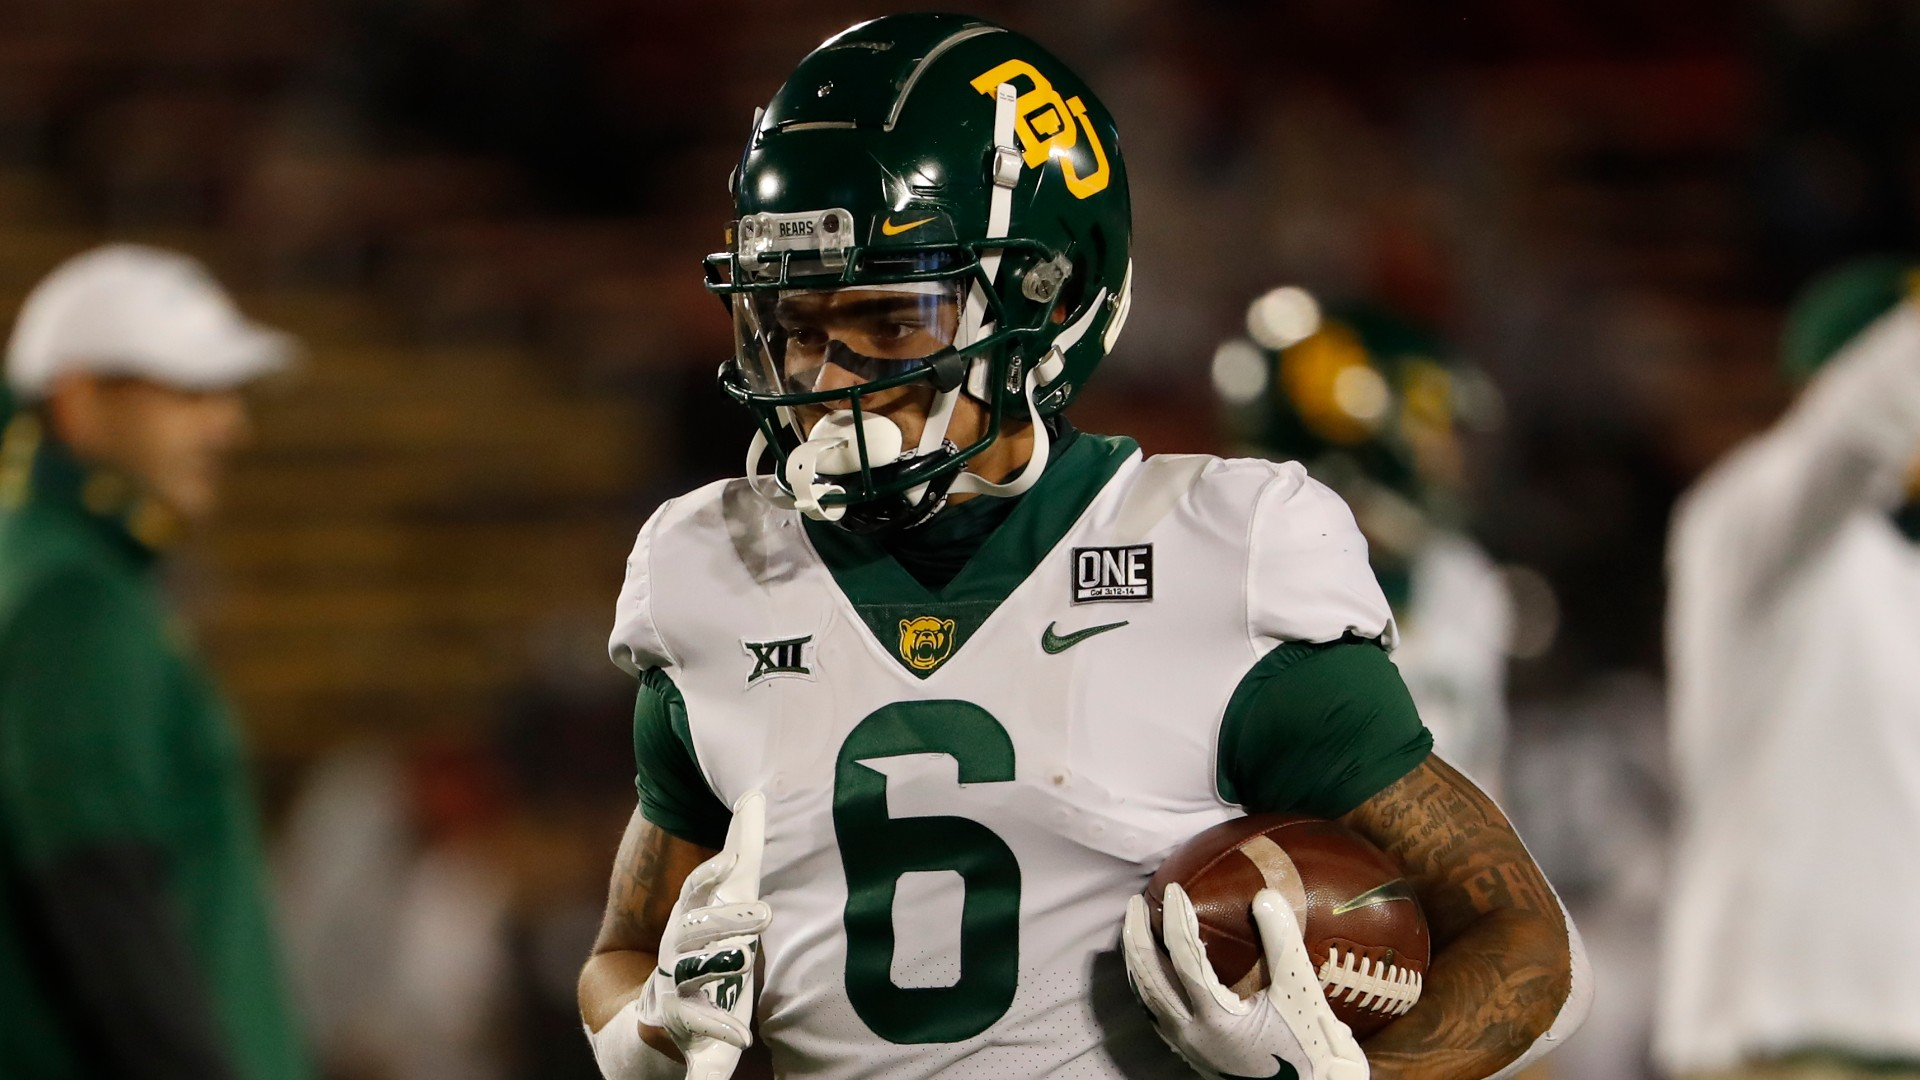 College Football Odds Pick For Baylor Vs Texas Tech Betting Value Sits With Bears